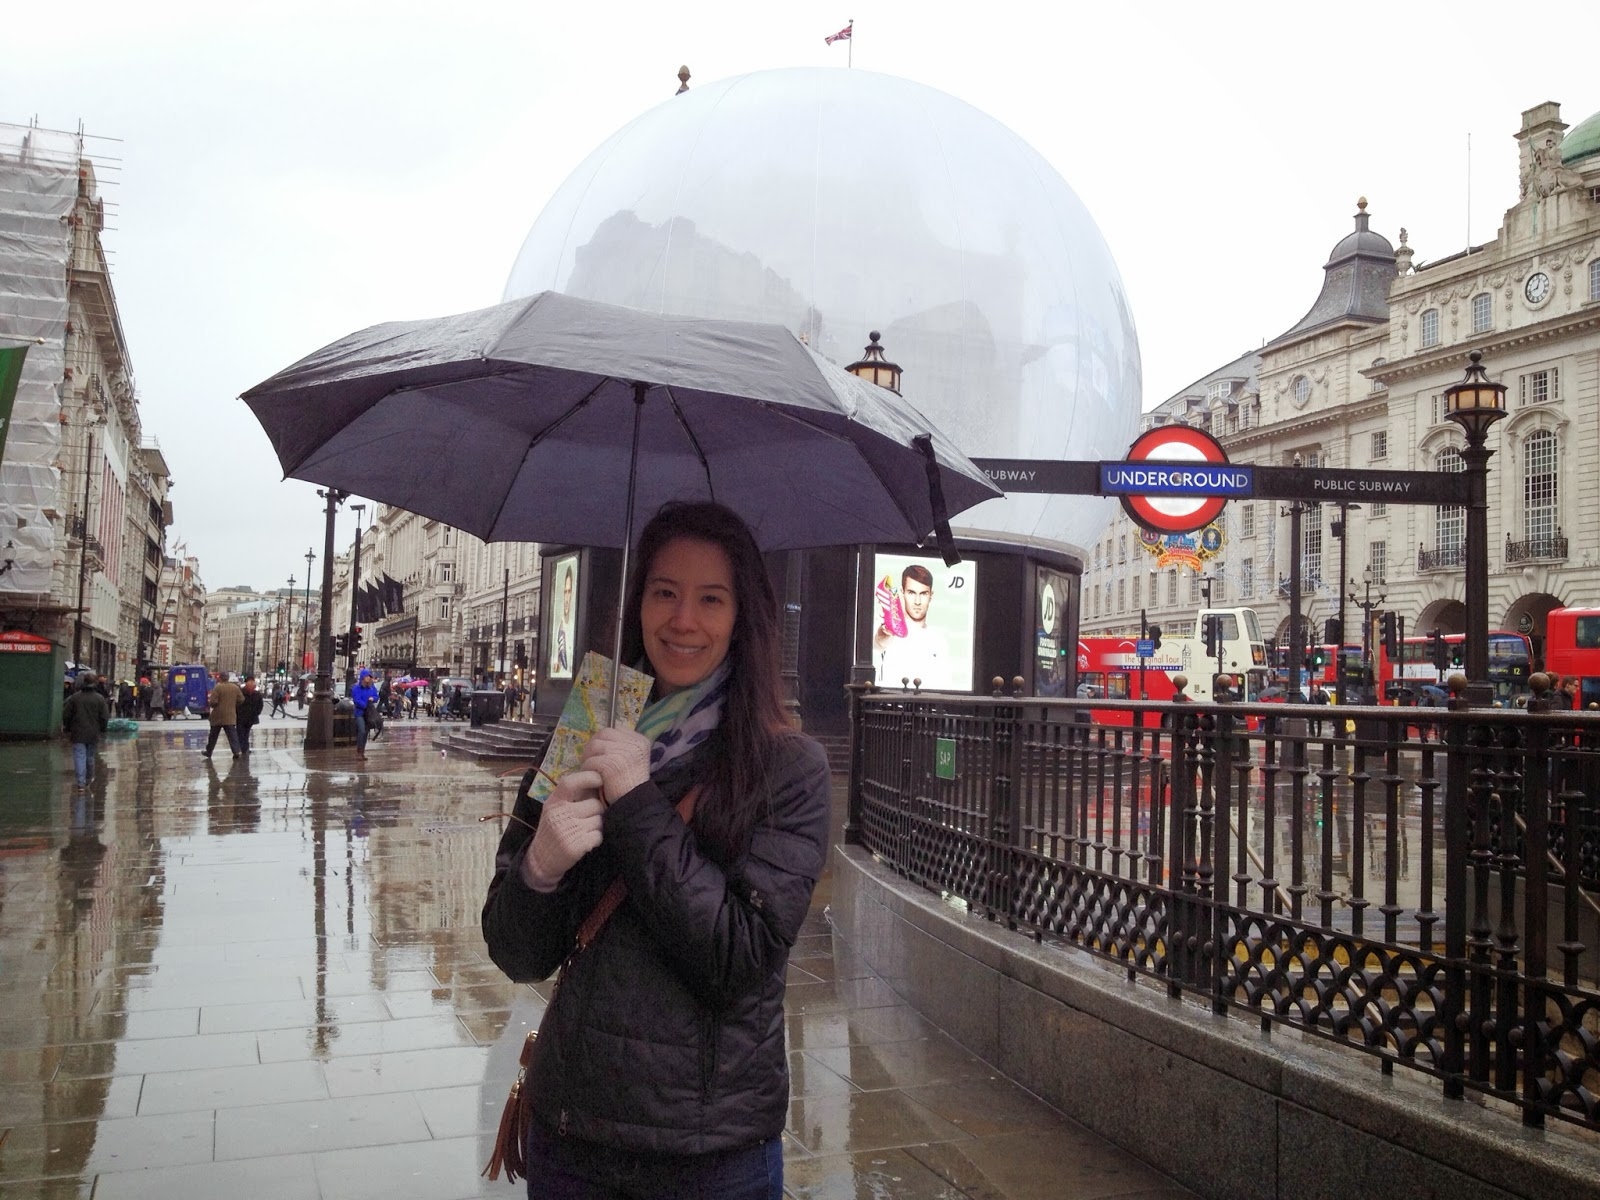 London - Trying to stay dry in the freezing rain